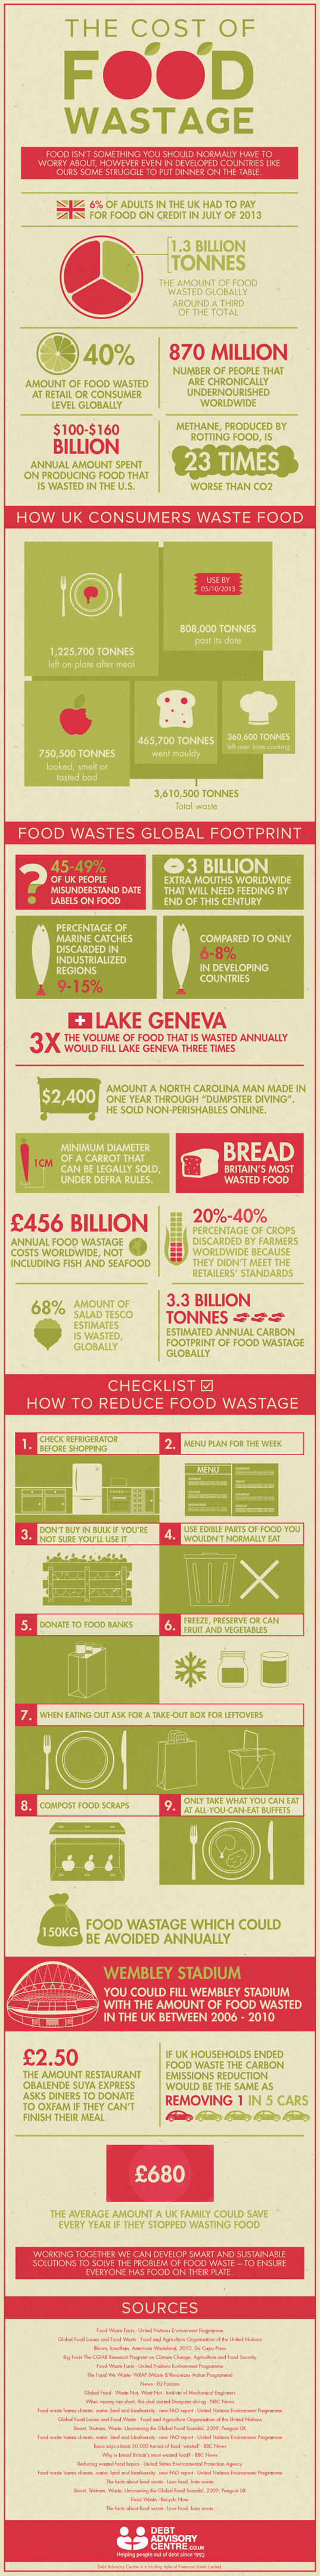 the cost of food wastage, infographic, food waste, sustainable lifestyle, sustainable food, agriculture, sustainable agriculture, efficiency, produce, sustainable produce